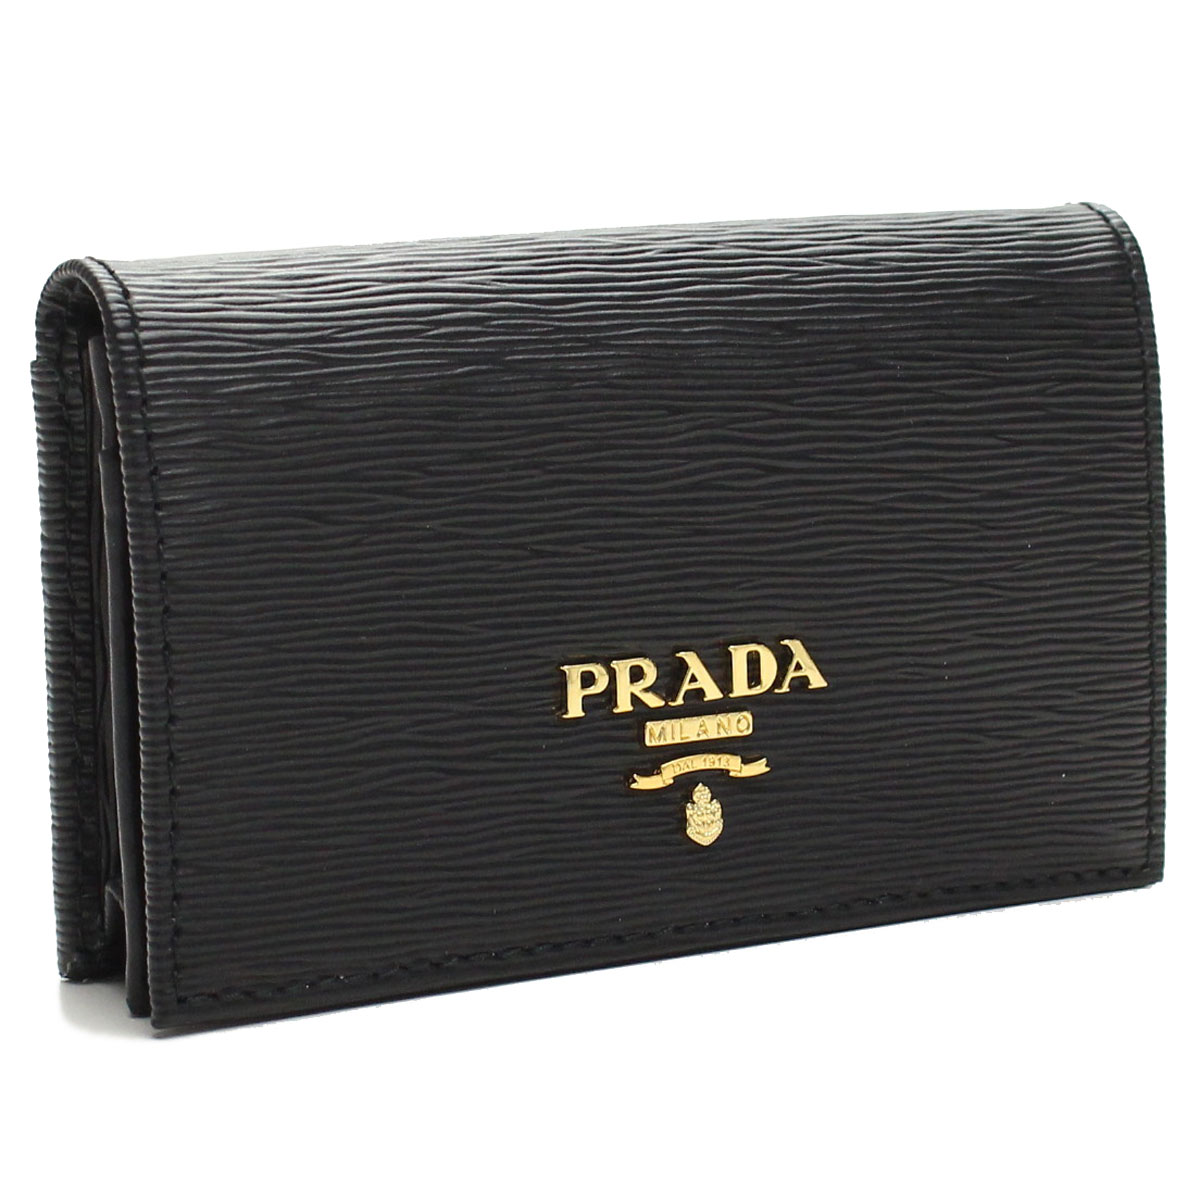 Bighit the total brand wholesale rakuten global market prada bighit the total brand wholesale rakuten global market prada outlet prada outlet business card holder 1mc122 o 2ezz f0002 nero black taxfreesend by reheart Gallery